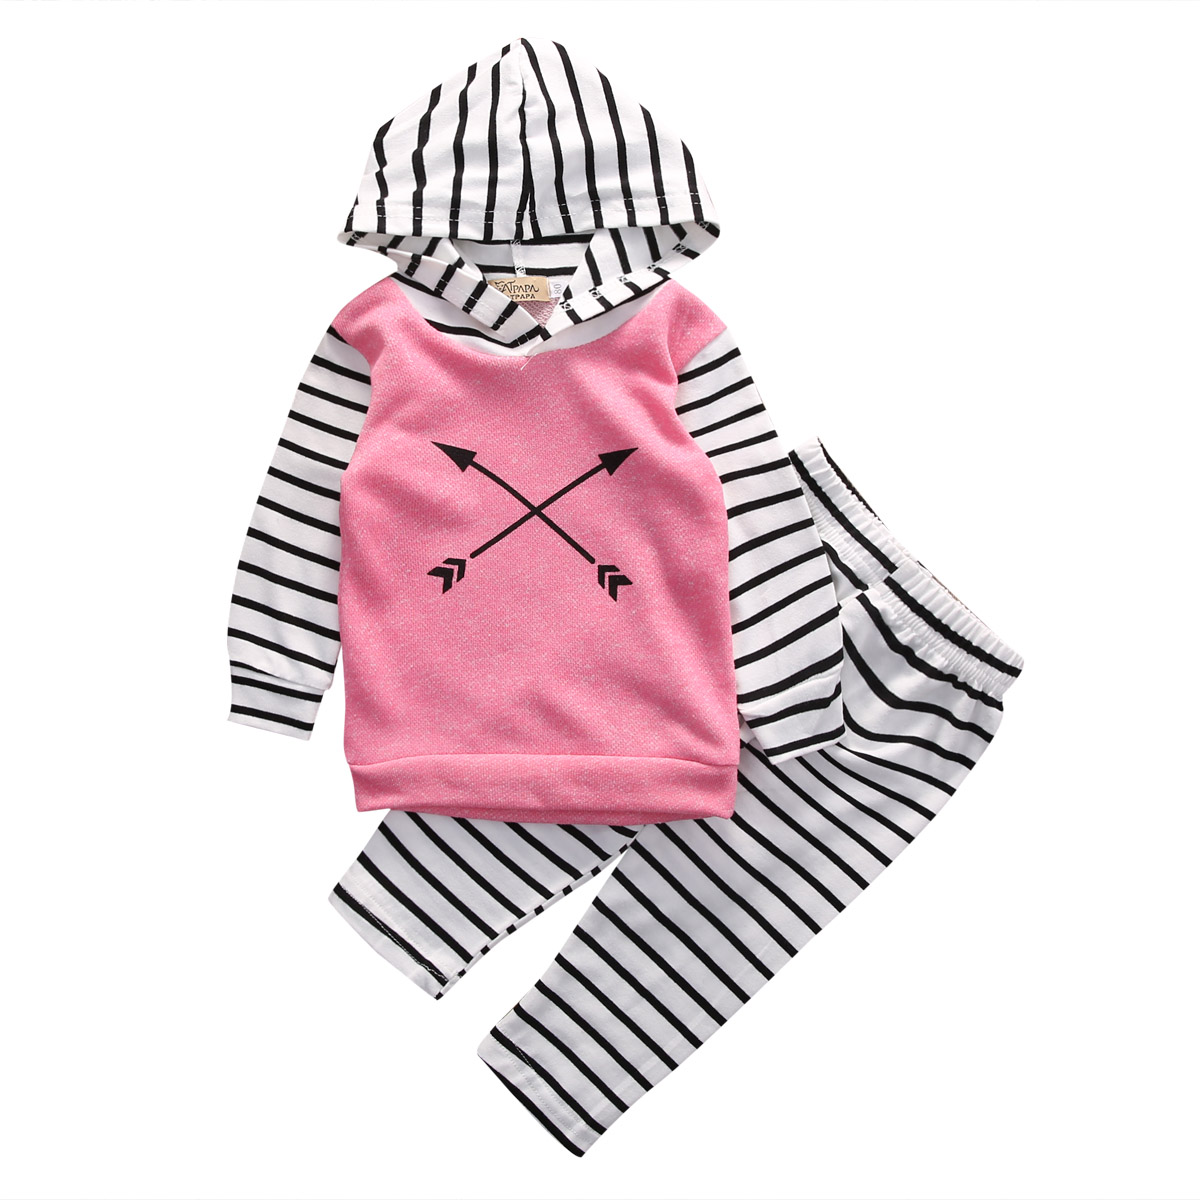 2PCS Set Newborn Baby Clothes Hooded Sweatshirt Coat Tops +Striped Pant Trouser Outfit Bebek Giyim Kids Clothing Set Bebes Suit 2017 new fashion kids clothes off shoulder camo crop tops hole jean denim pant 2pcs outfit summer suit children clothing set